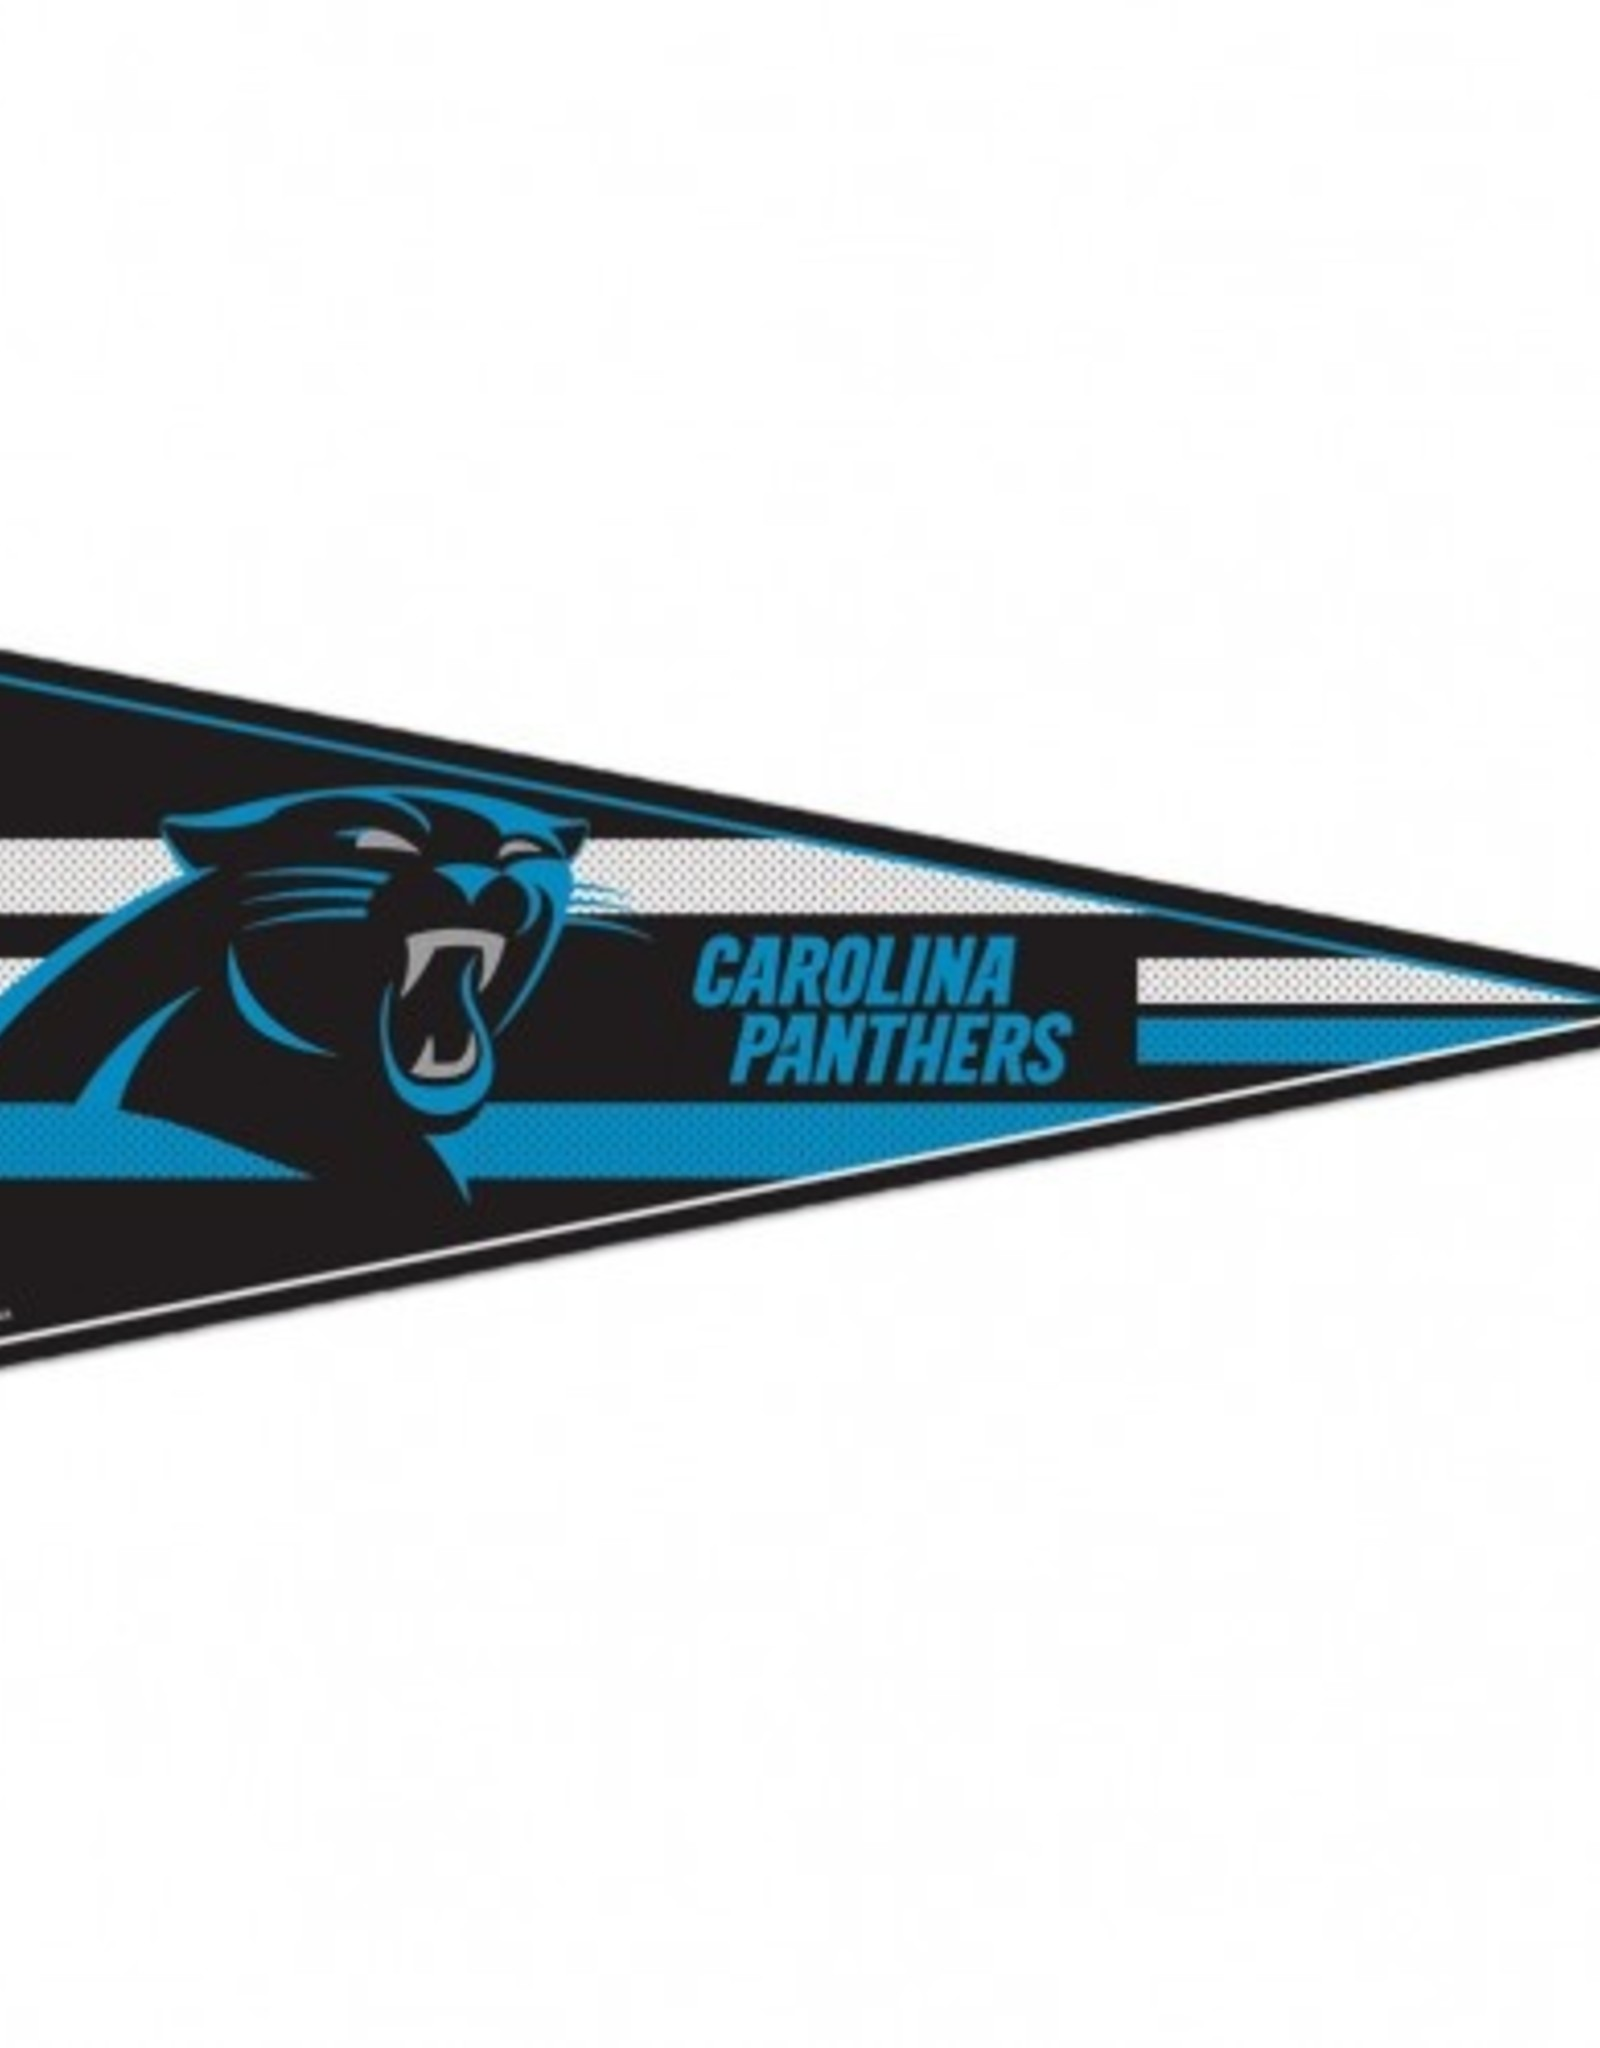 "Carolina Panthers 12""x30"" Classic Pennant"